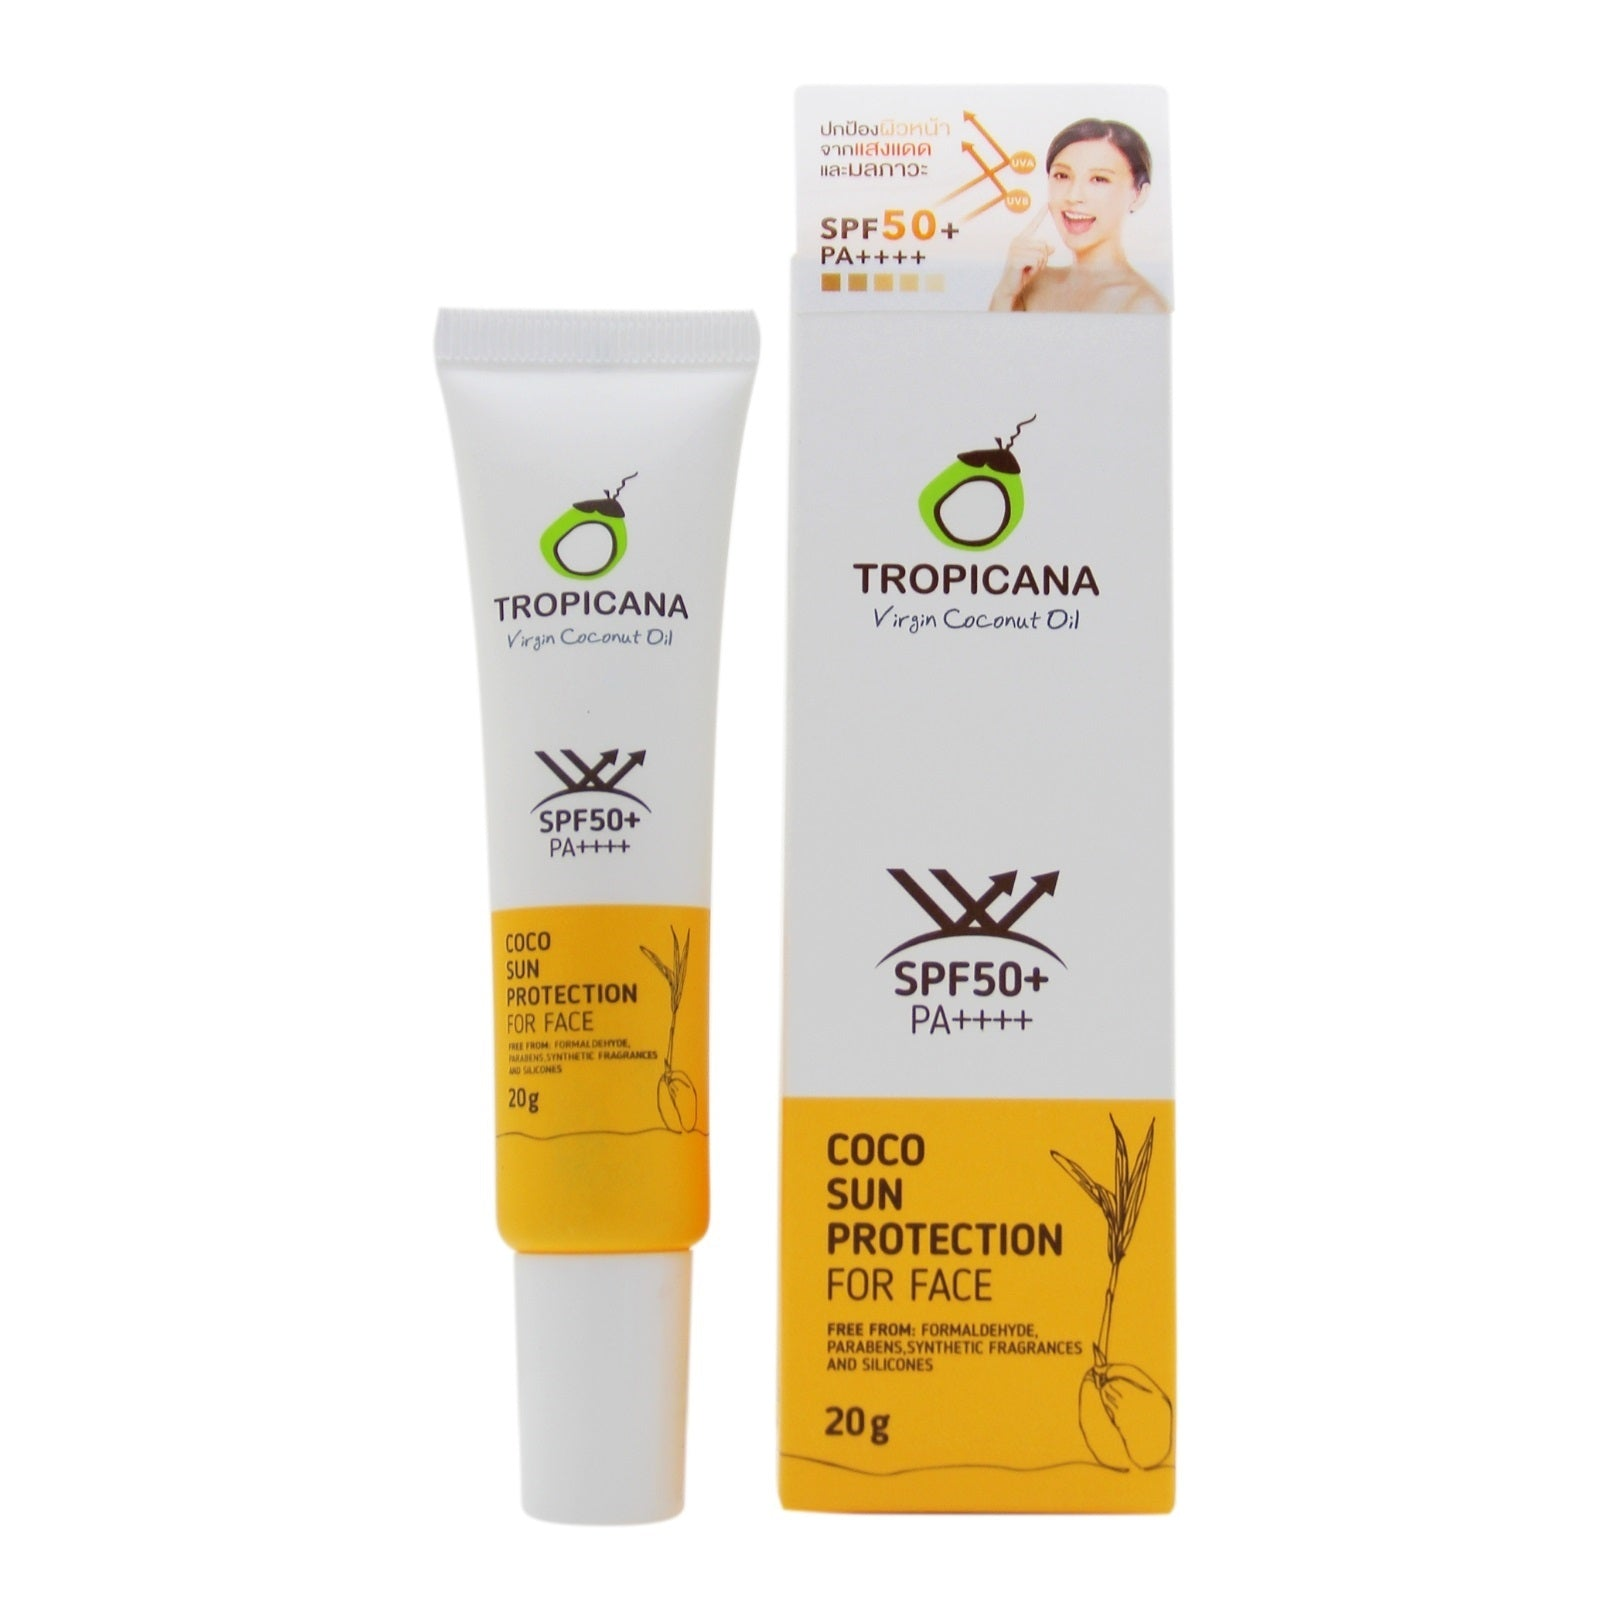 Tropicana Coco Sun Protection for Face 20g